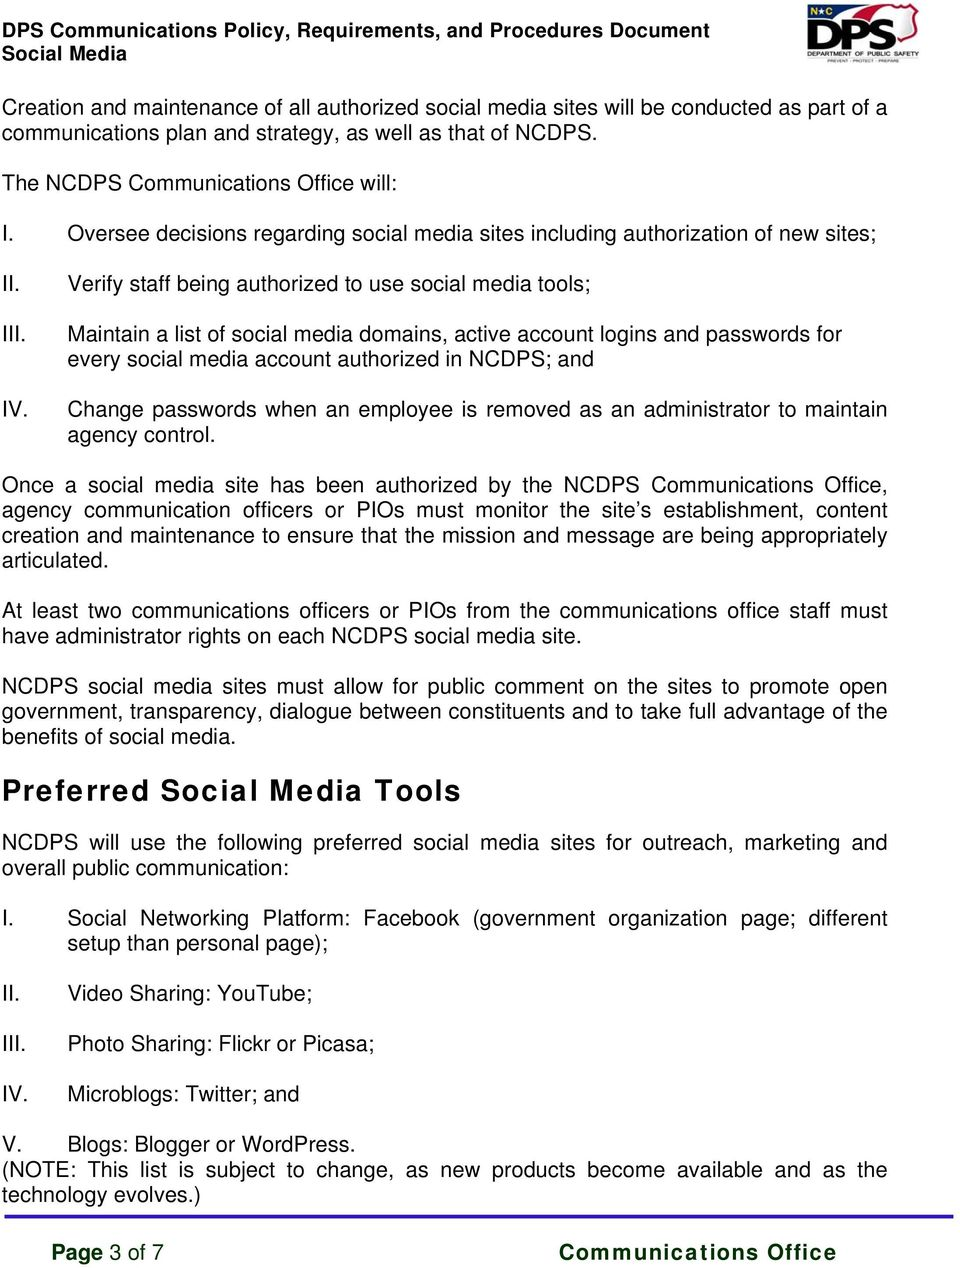 logins and passwords for every social media account authorized in NCDPS; and Change passwords when an employee is removed as an administrator to maintain agency control.